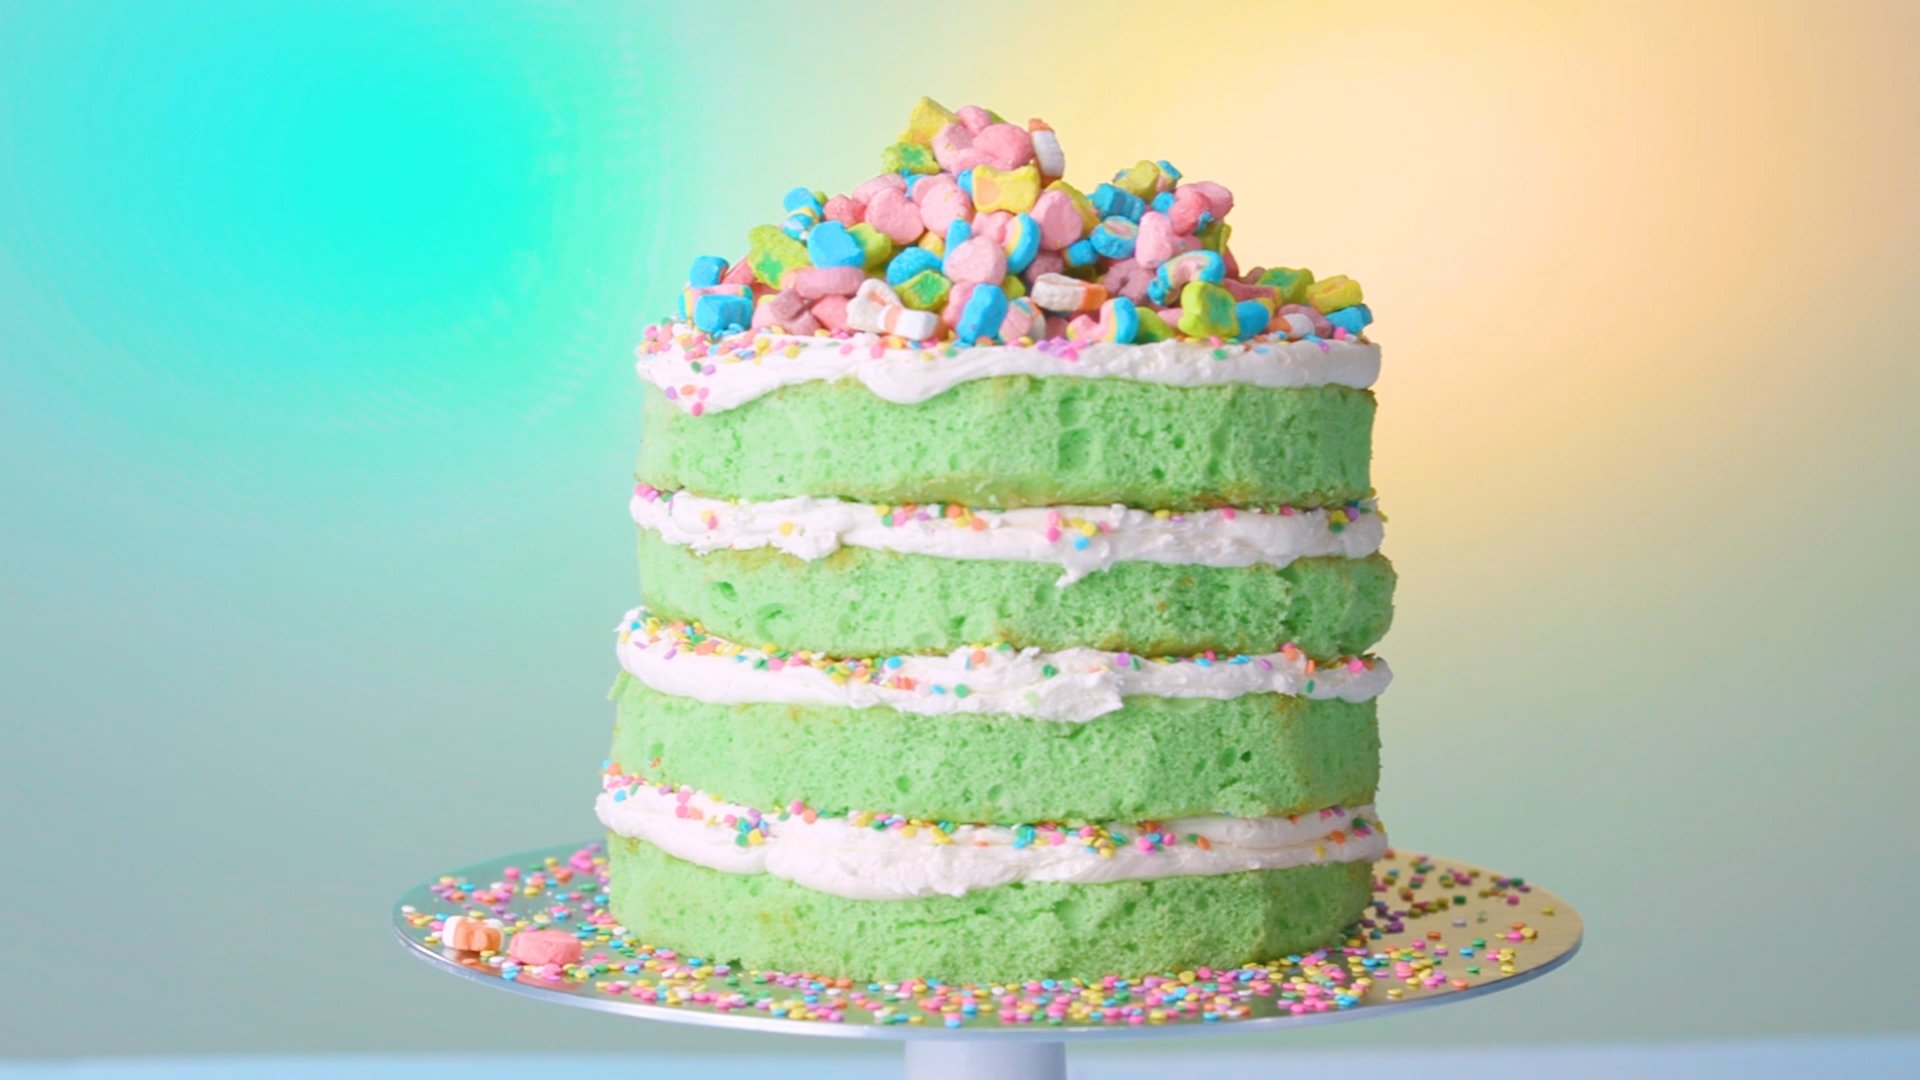 St. Patrick's Day will be magically delicious with this marshmallow-frosted Lucky Charms cake